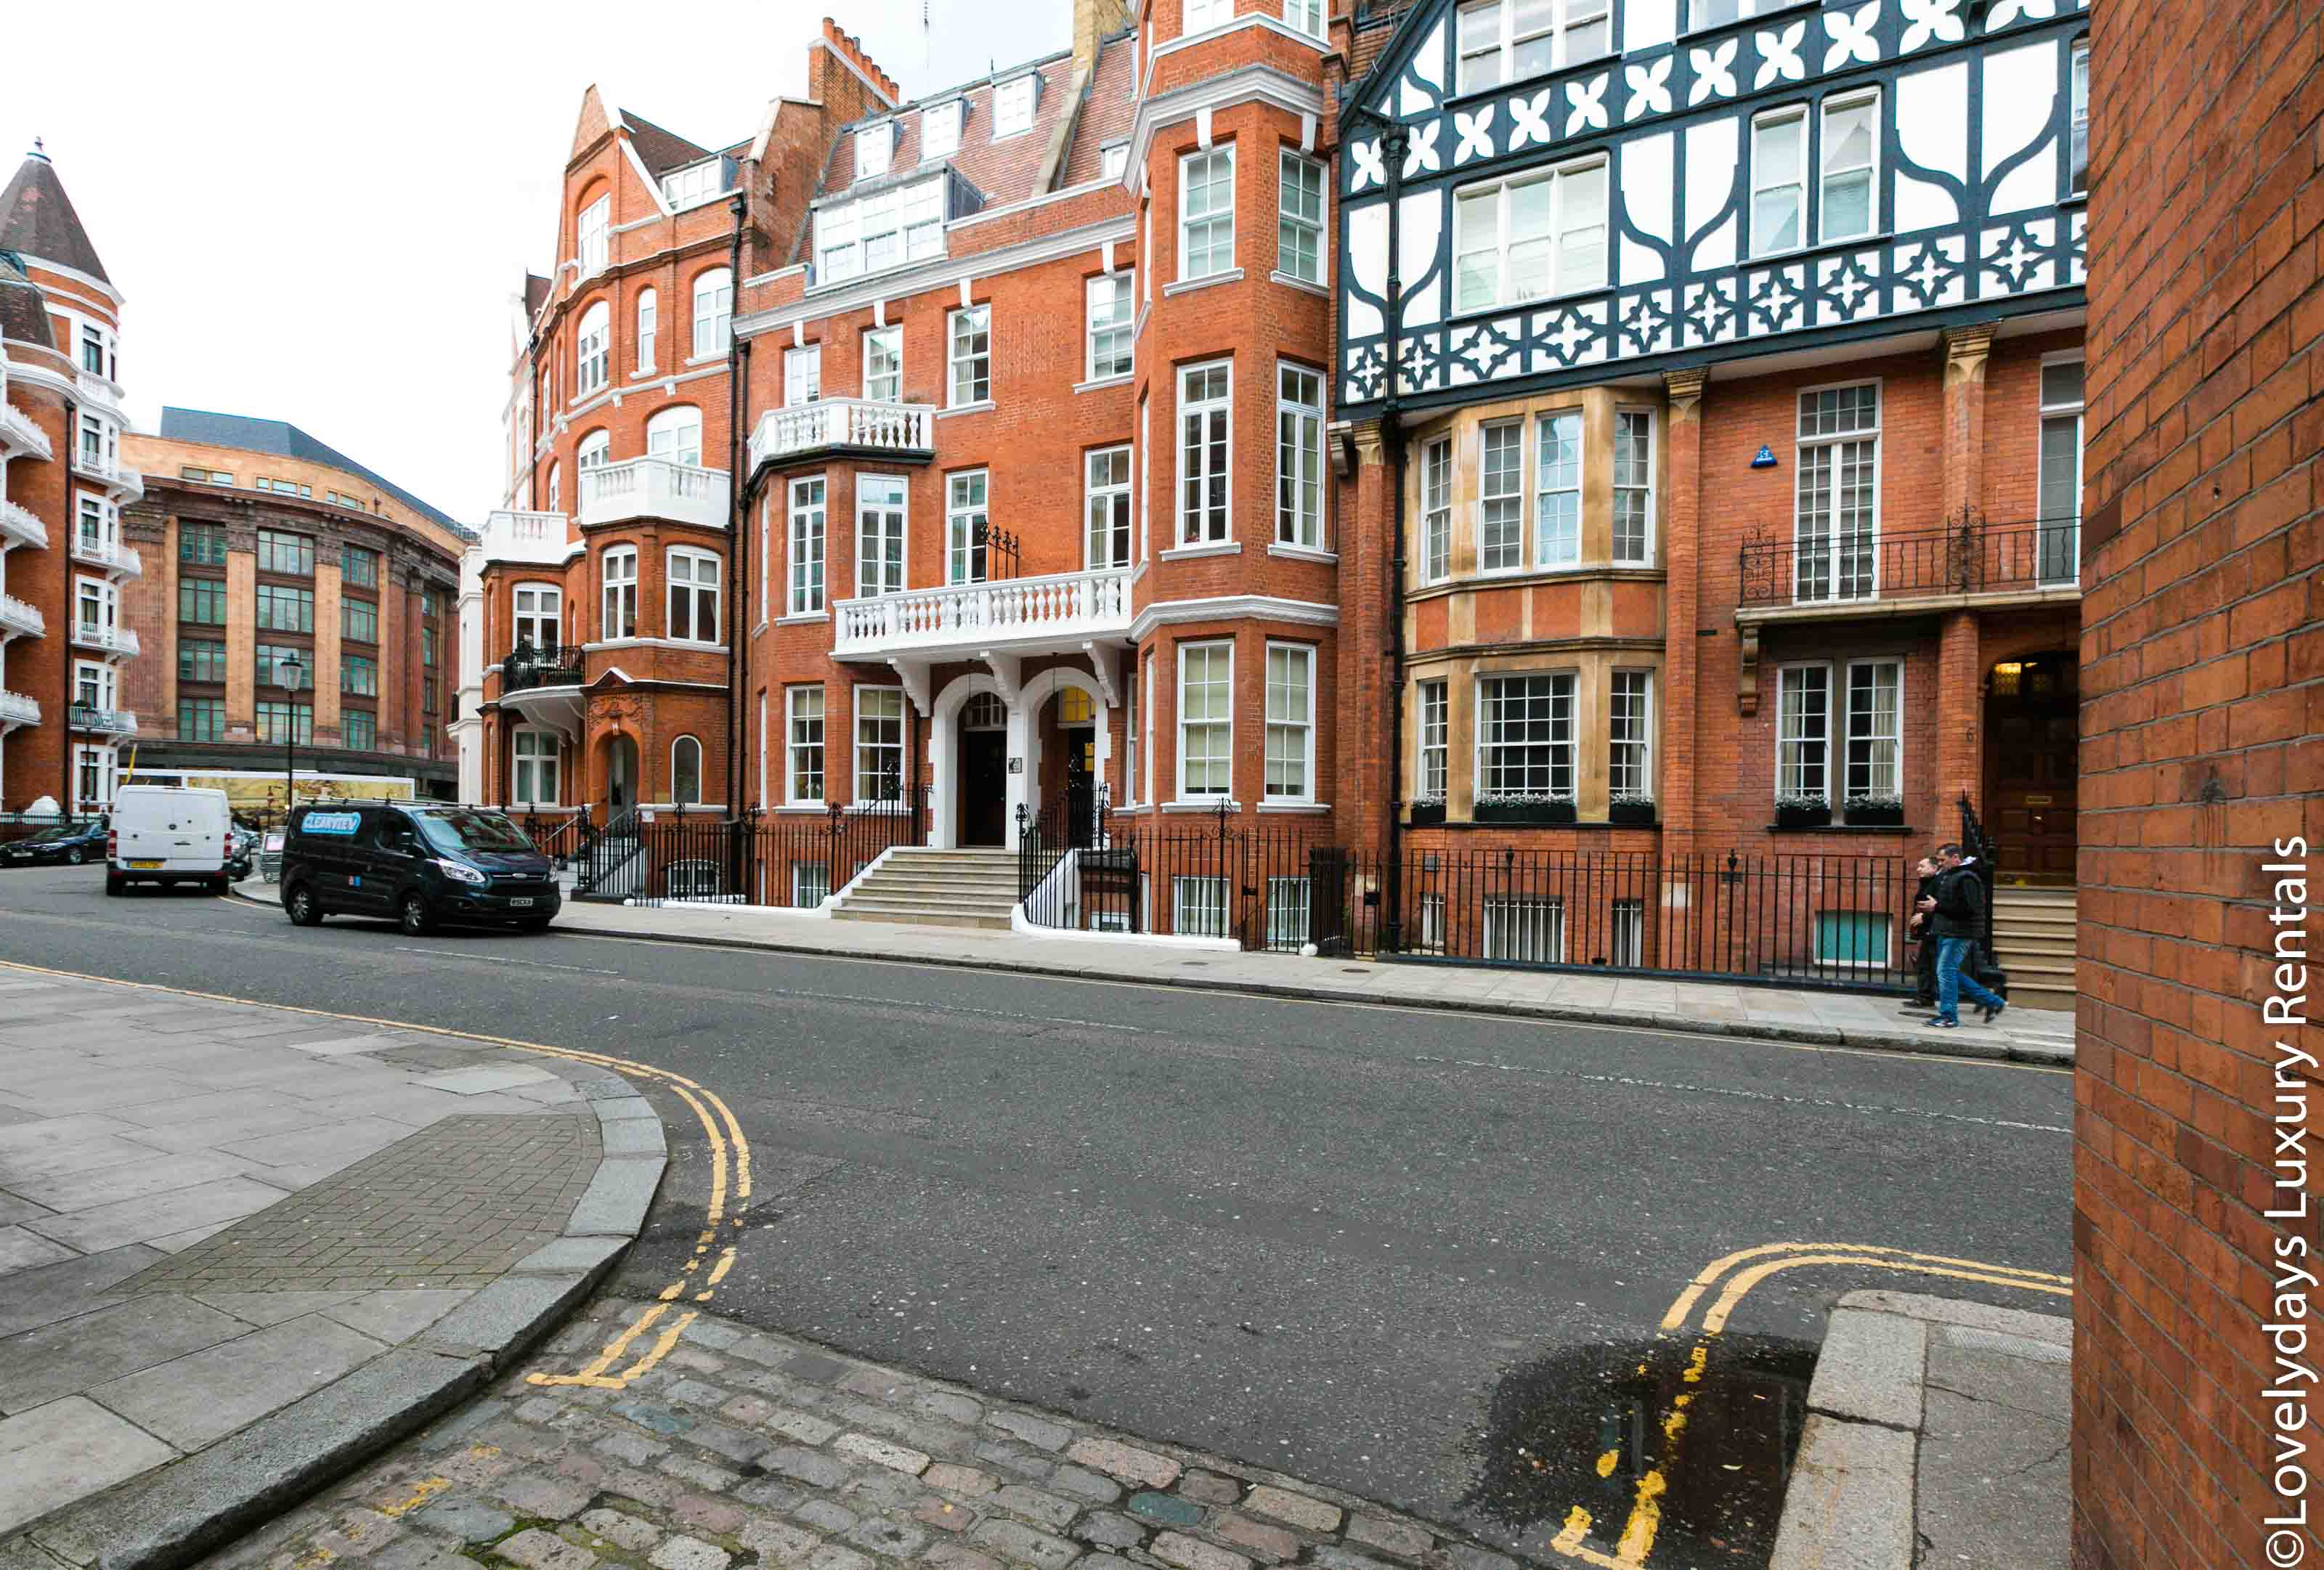 Lovelydays luxury service apartment rental - London - Knightsbridge - Hans Crescent - Partner - 2 bedrooms - 2 bathrooms - Hallway - 834e215b9d8c - Lovelydays